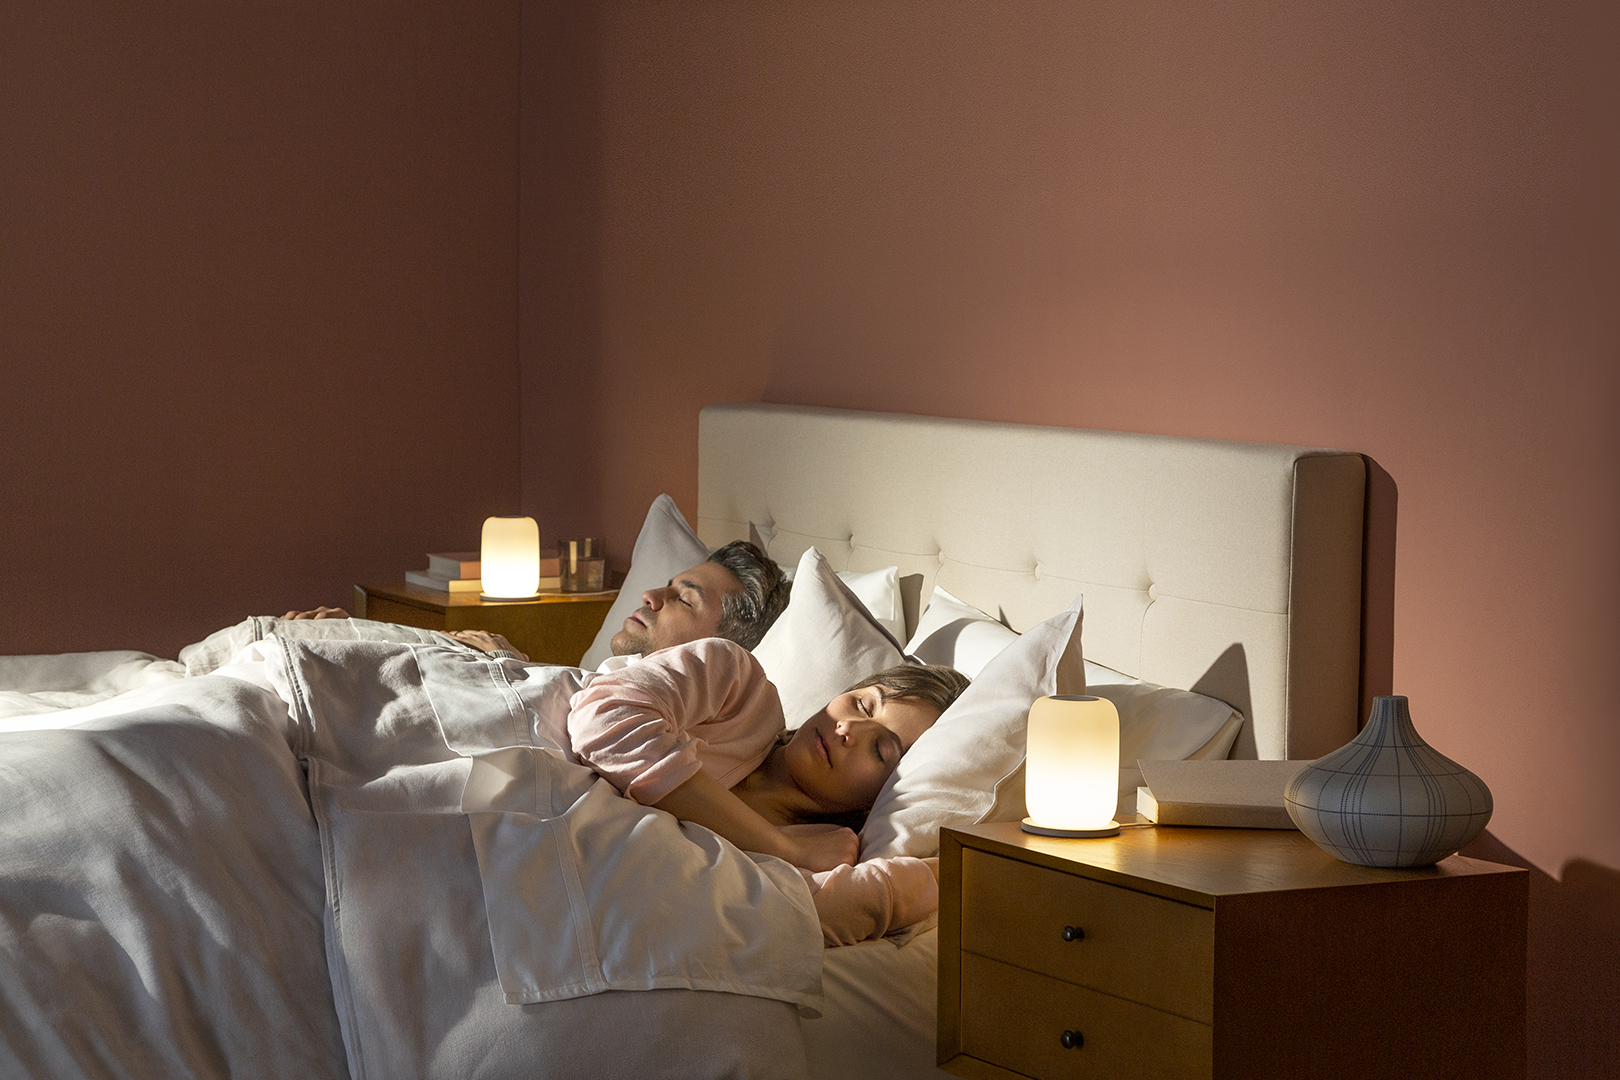 Man and woman sleeping in bed with white bedding, terra-cotta colored walls, with Casper Glow lights on wood bedside tables